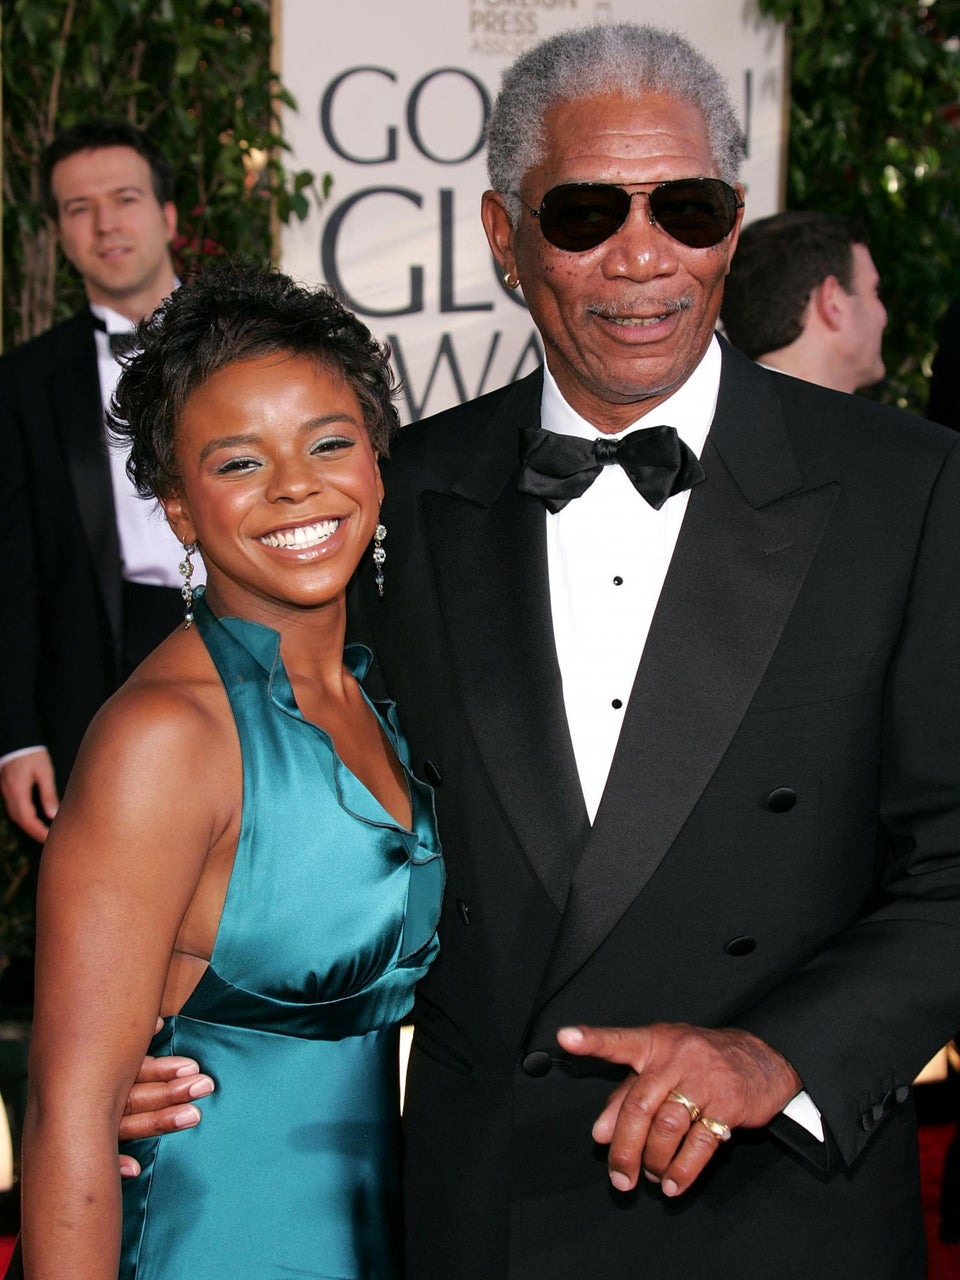 Man Who Killed Morgan Freeman's Granddaughter Pleads Not Guilty